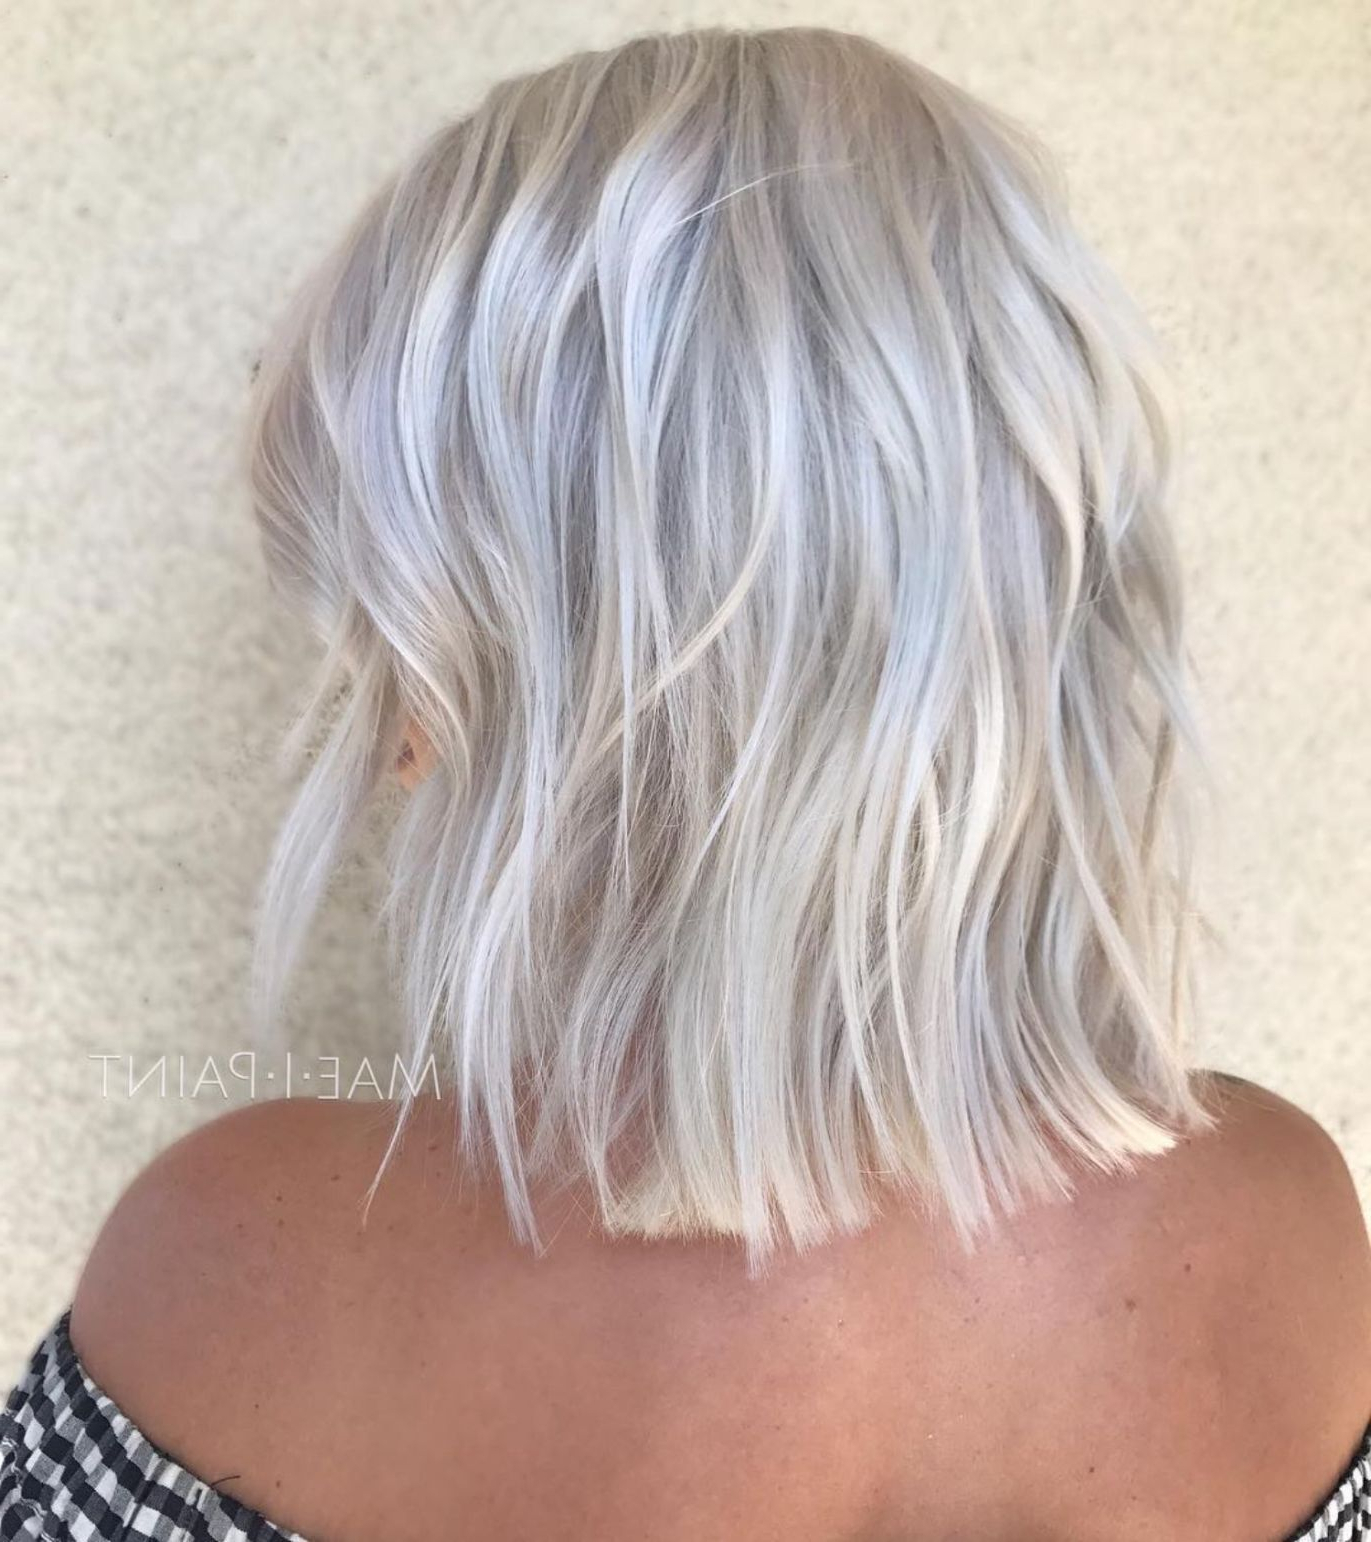 70 Devastatingly Cool Haircuts For Thin Hair In 2019 | Short In Silver White Shaggy Haircuts (Gallery 6 of 20)